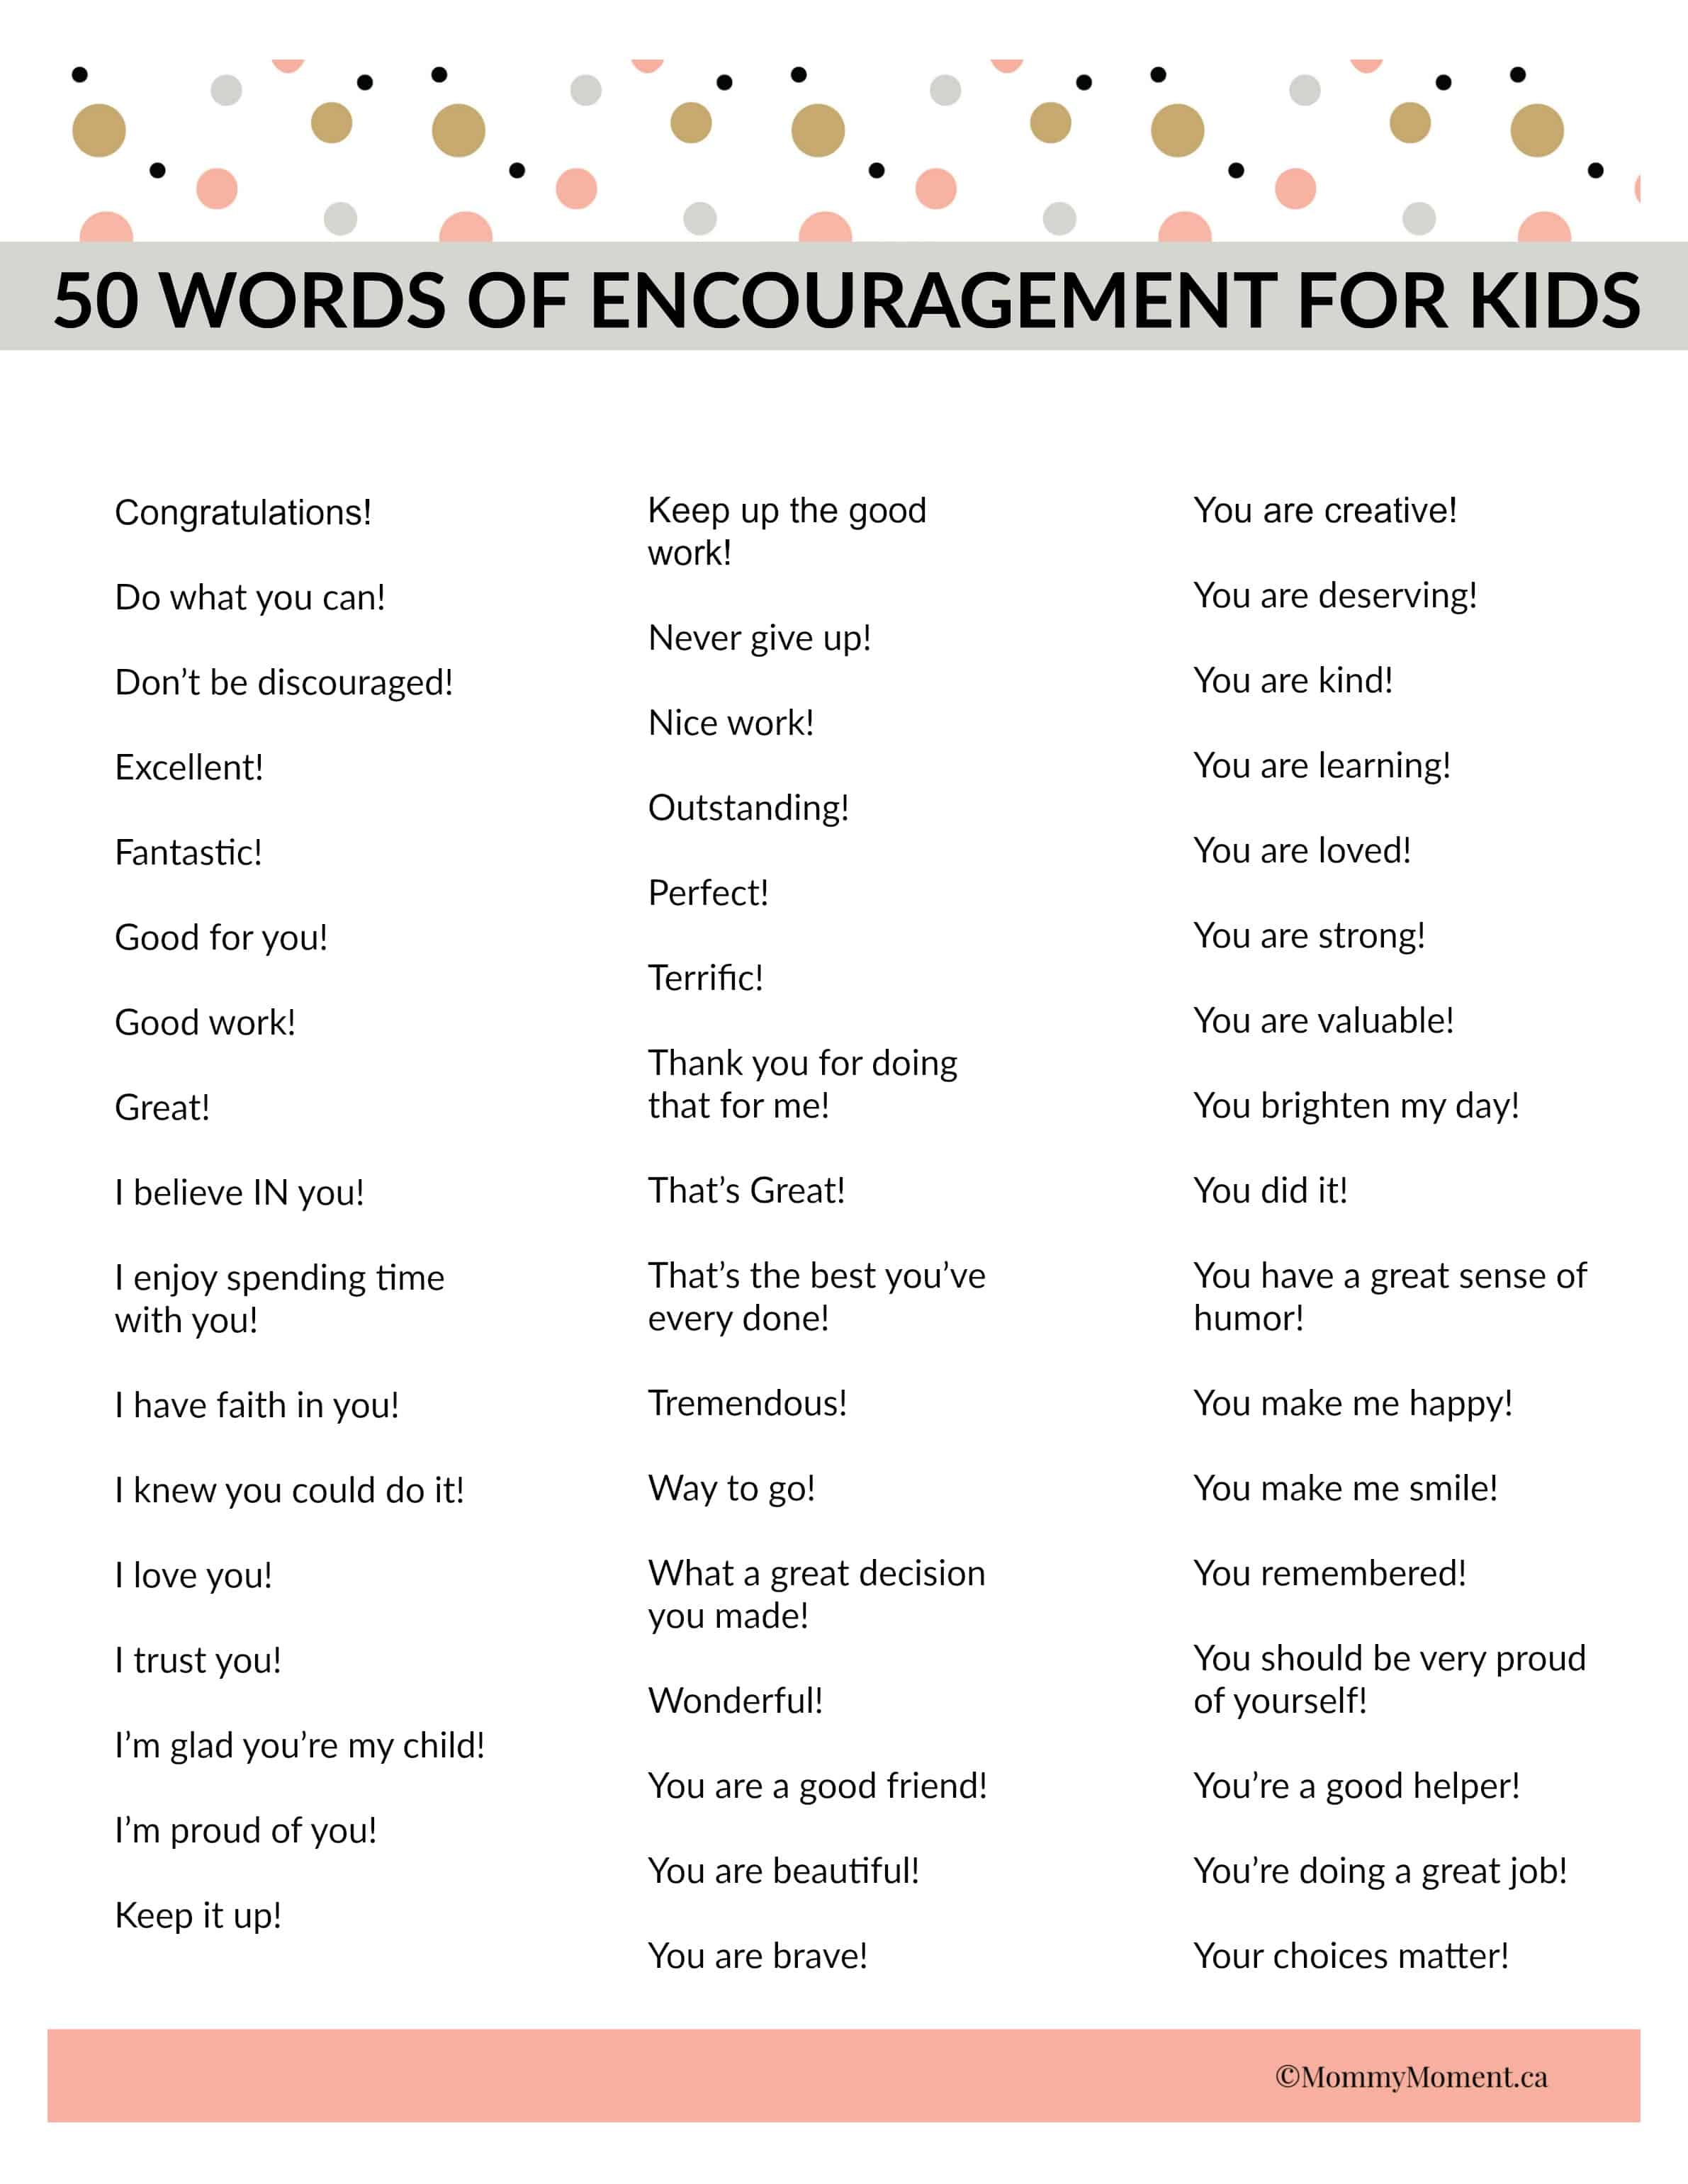 50 Words Of Encouragement For Kids